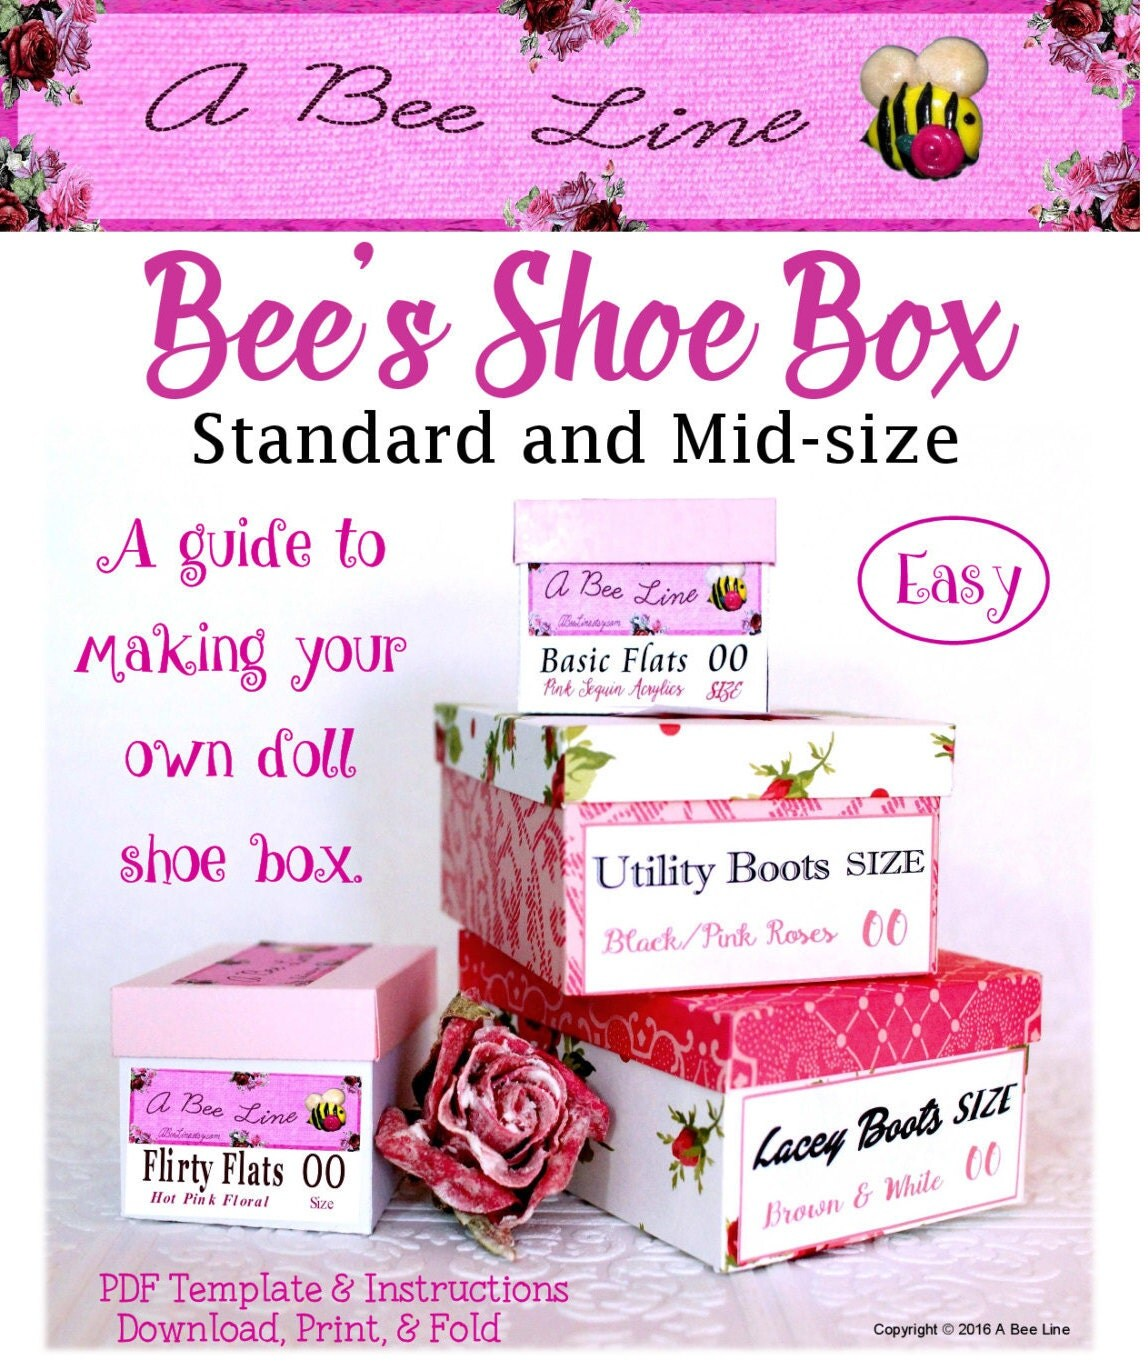 bee 39 s shoe box standard and mid size doll shoe box pdf. Black Bedroom Furniture Sets. Home Design Ideas